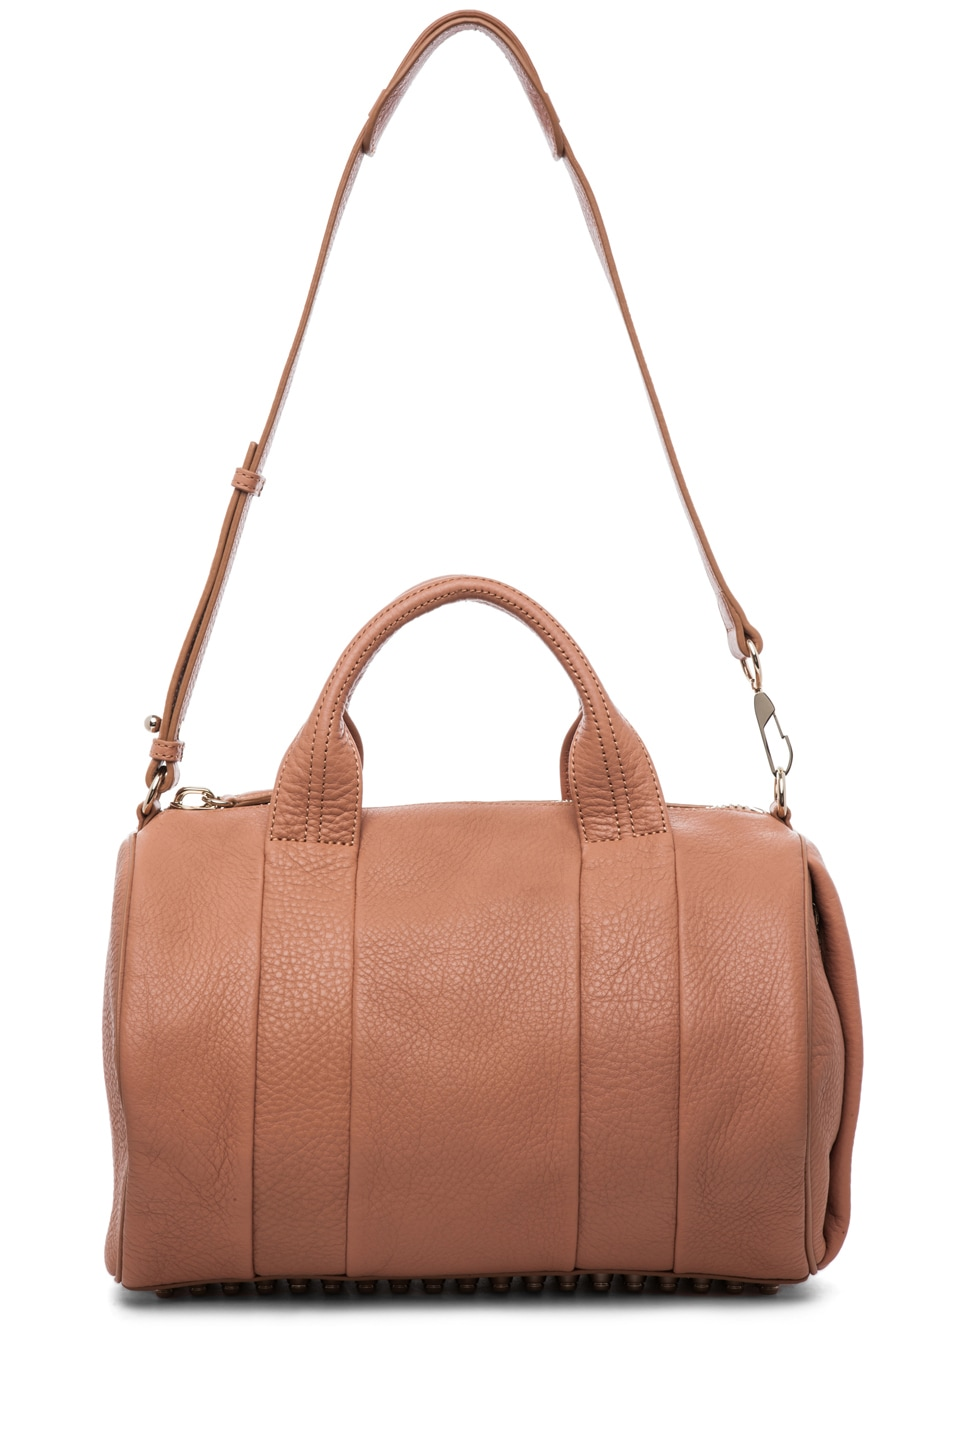 Image 6 of Alexander Wang Rocco Soft Pebble Leather Bag in Tan